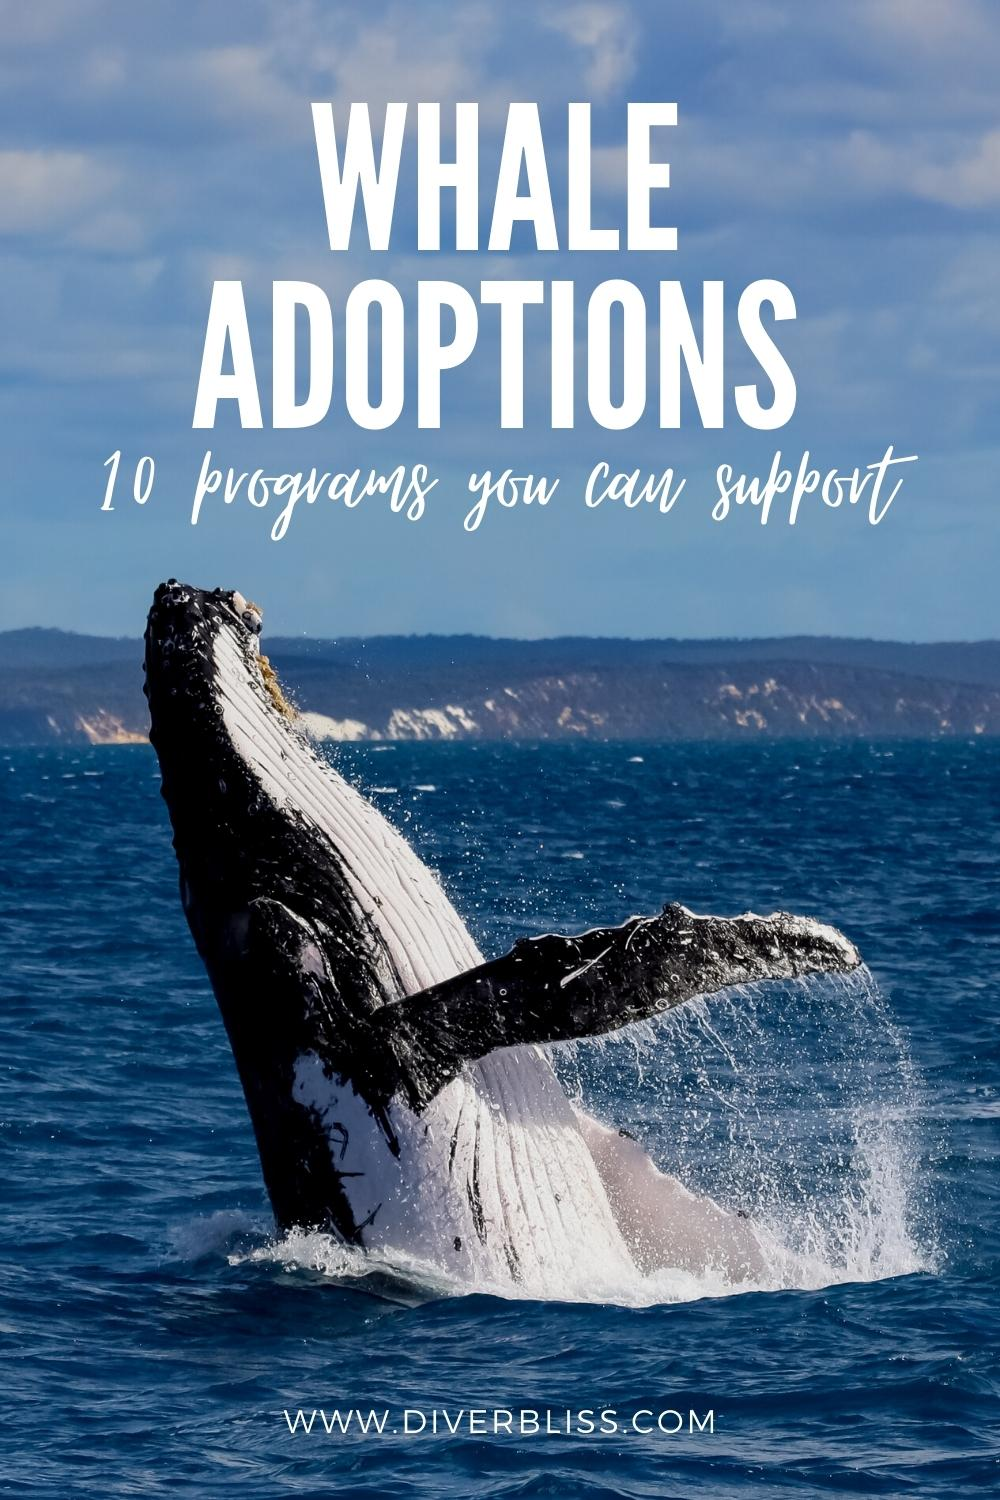 whale adoption, 10 programs you can support